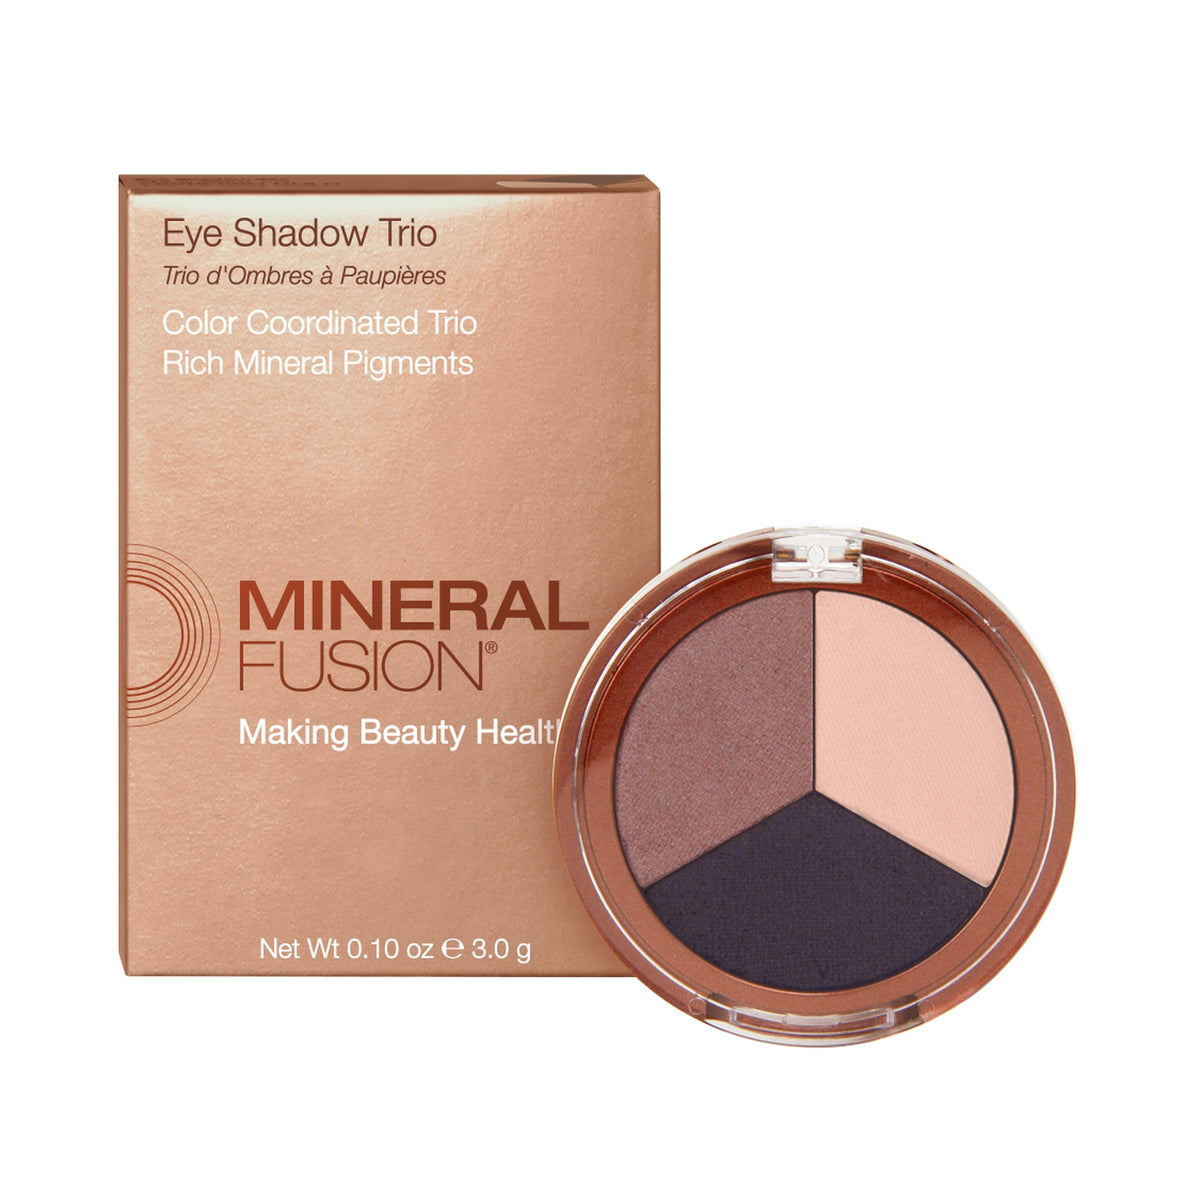 Mineral Fusion Eye Shadow Trio in Density